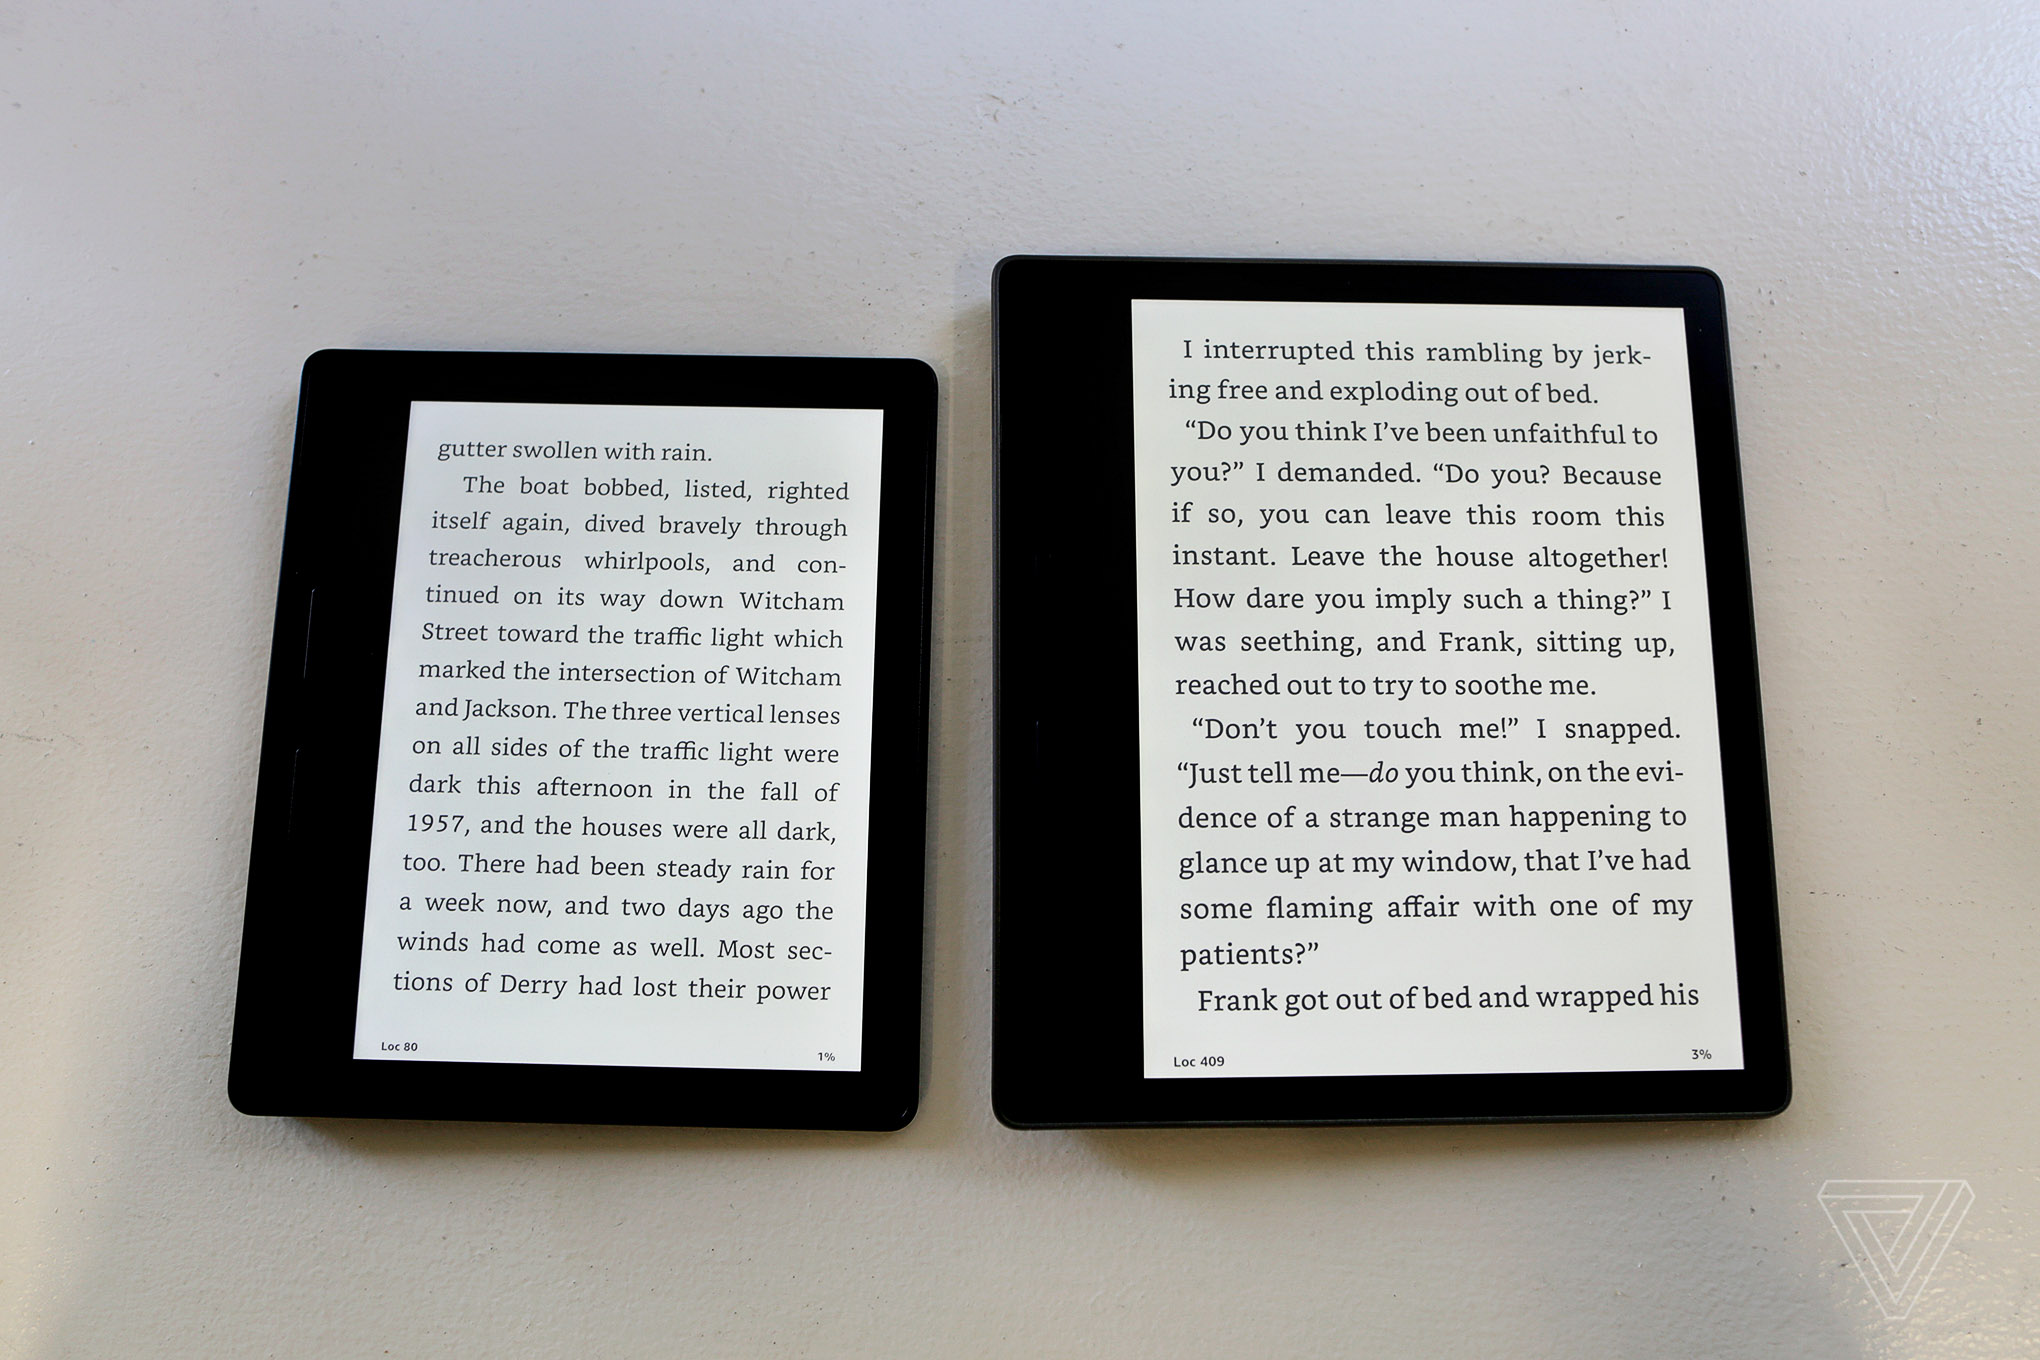 Amazon Kindle Oasis (2017) hands-on review